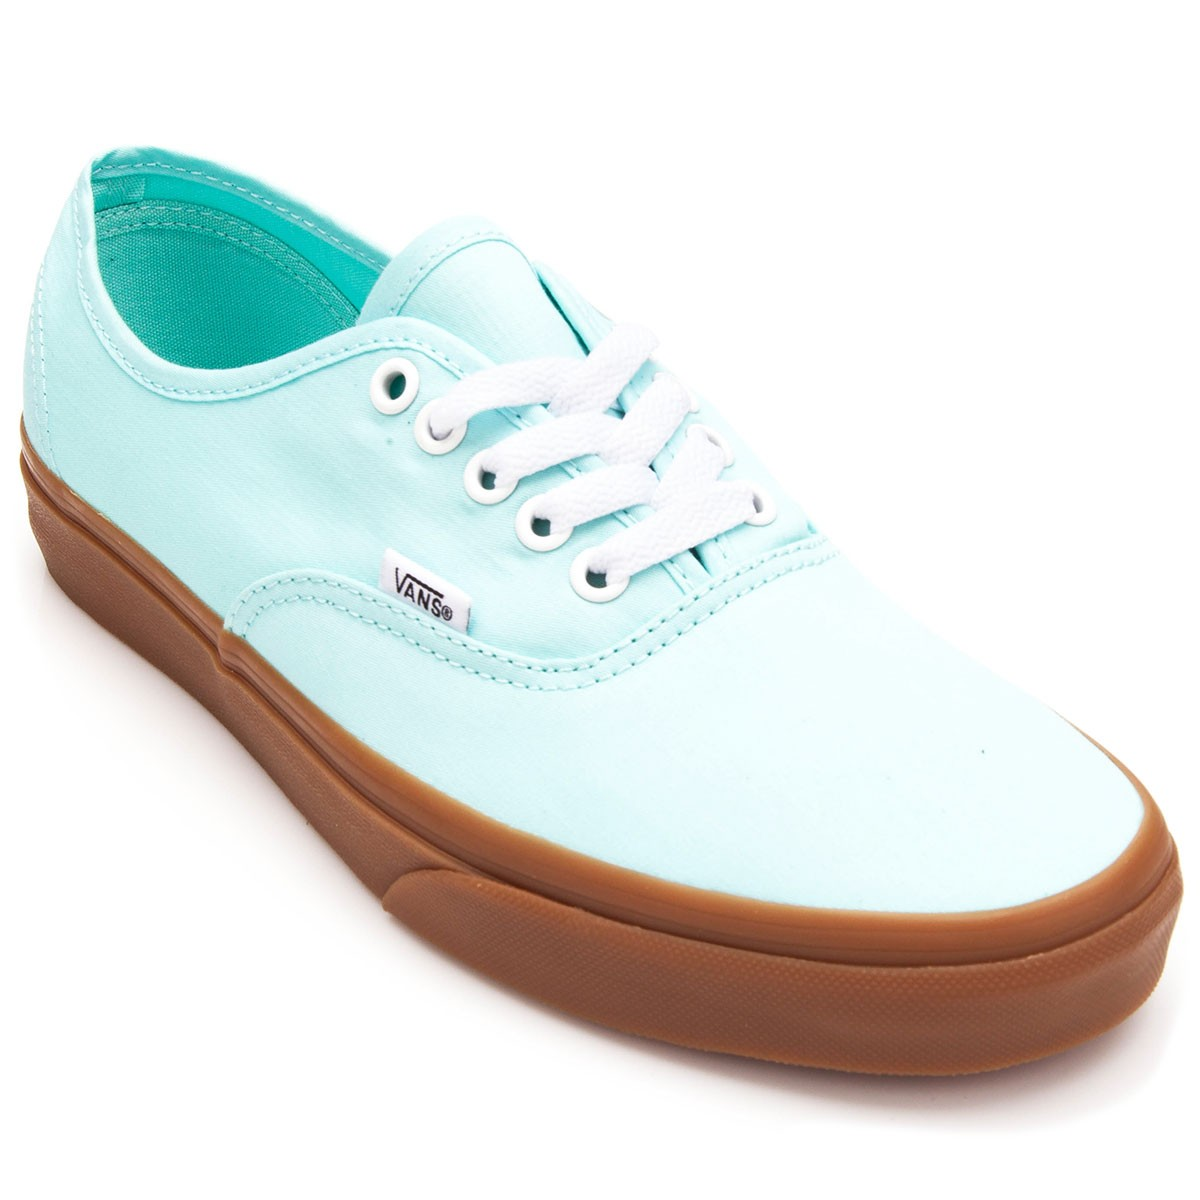 9112888351bfc9 Vans Authentic Brushed Twill Shoes - Blue Tint Gum - 4.5